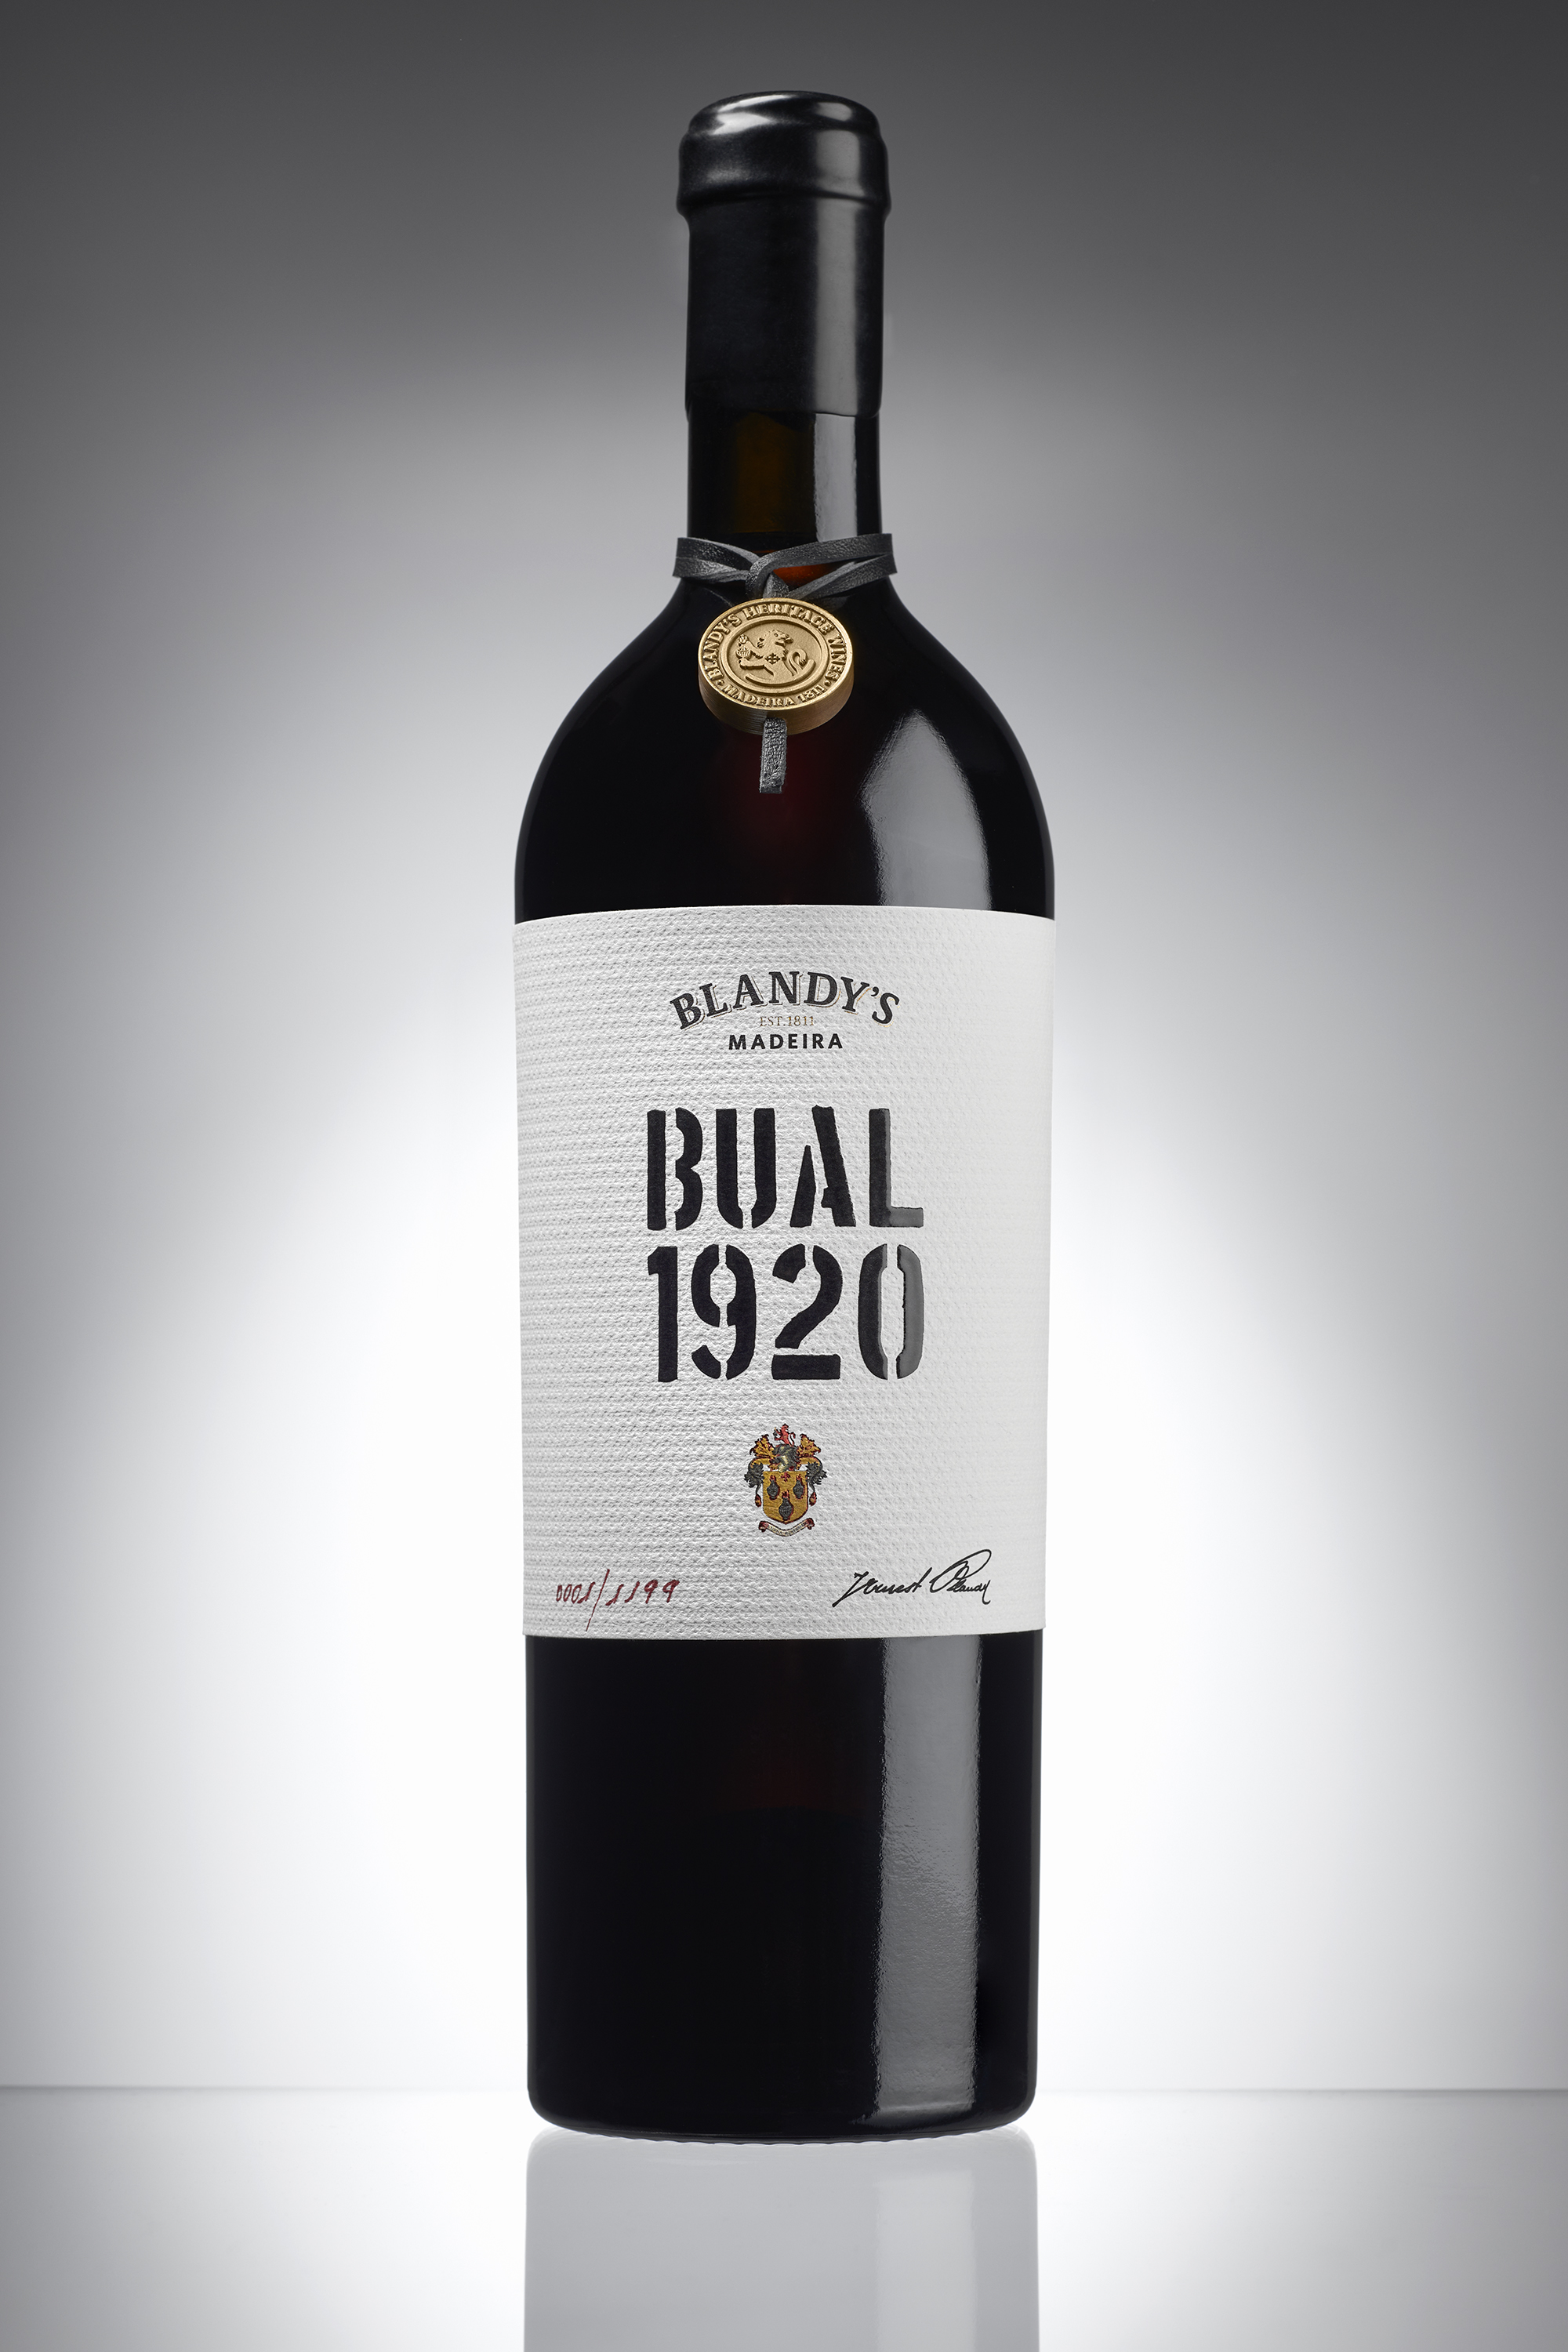 Blandy's Bual 1920 Designed by Omdesign